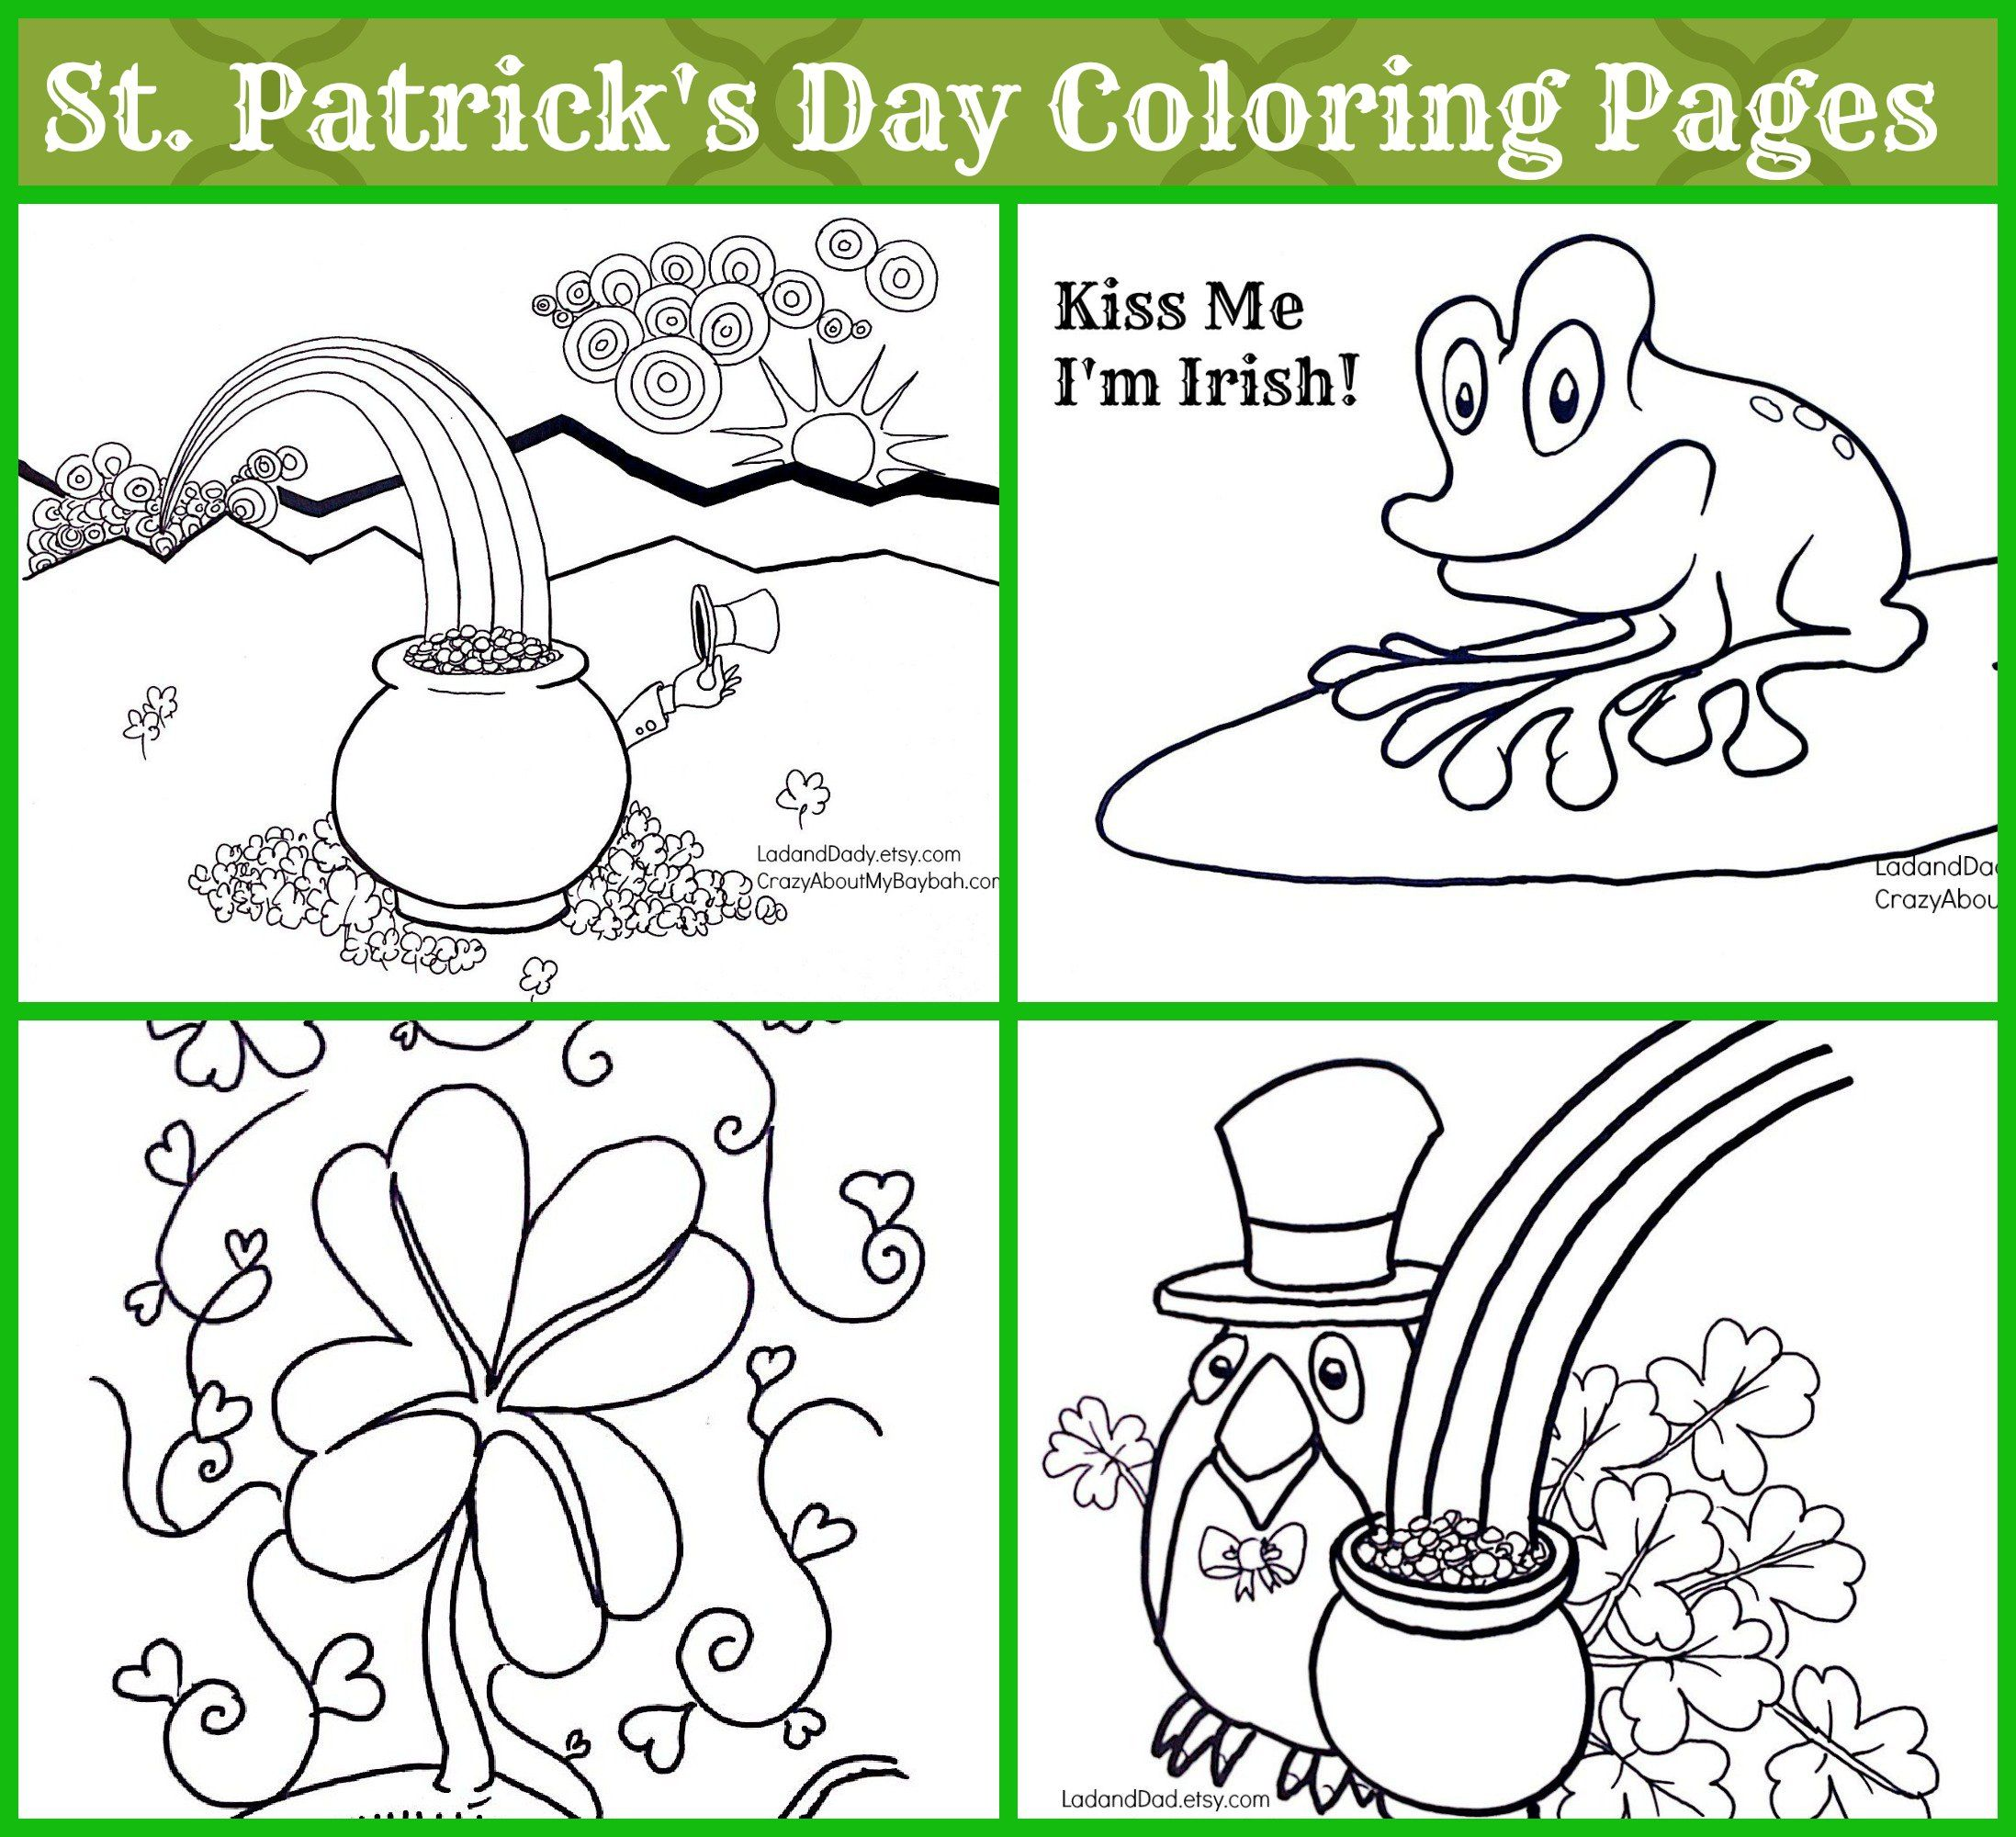 St Patrick S Day Coloring Pages For Kids Coloring Pages For Kids Coloring Pages Easter Coloring Pages [ 2000 x 2195 Pixel ]